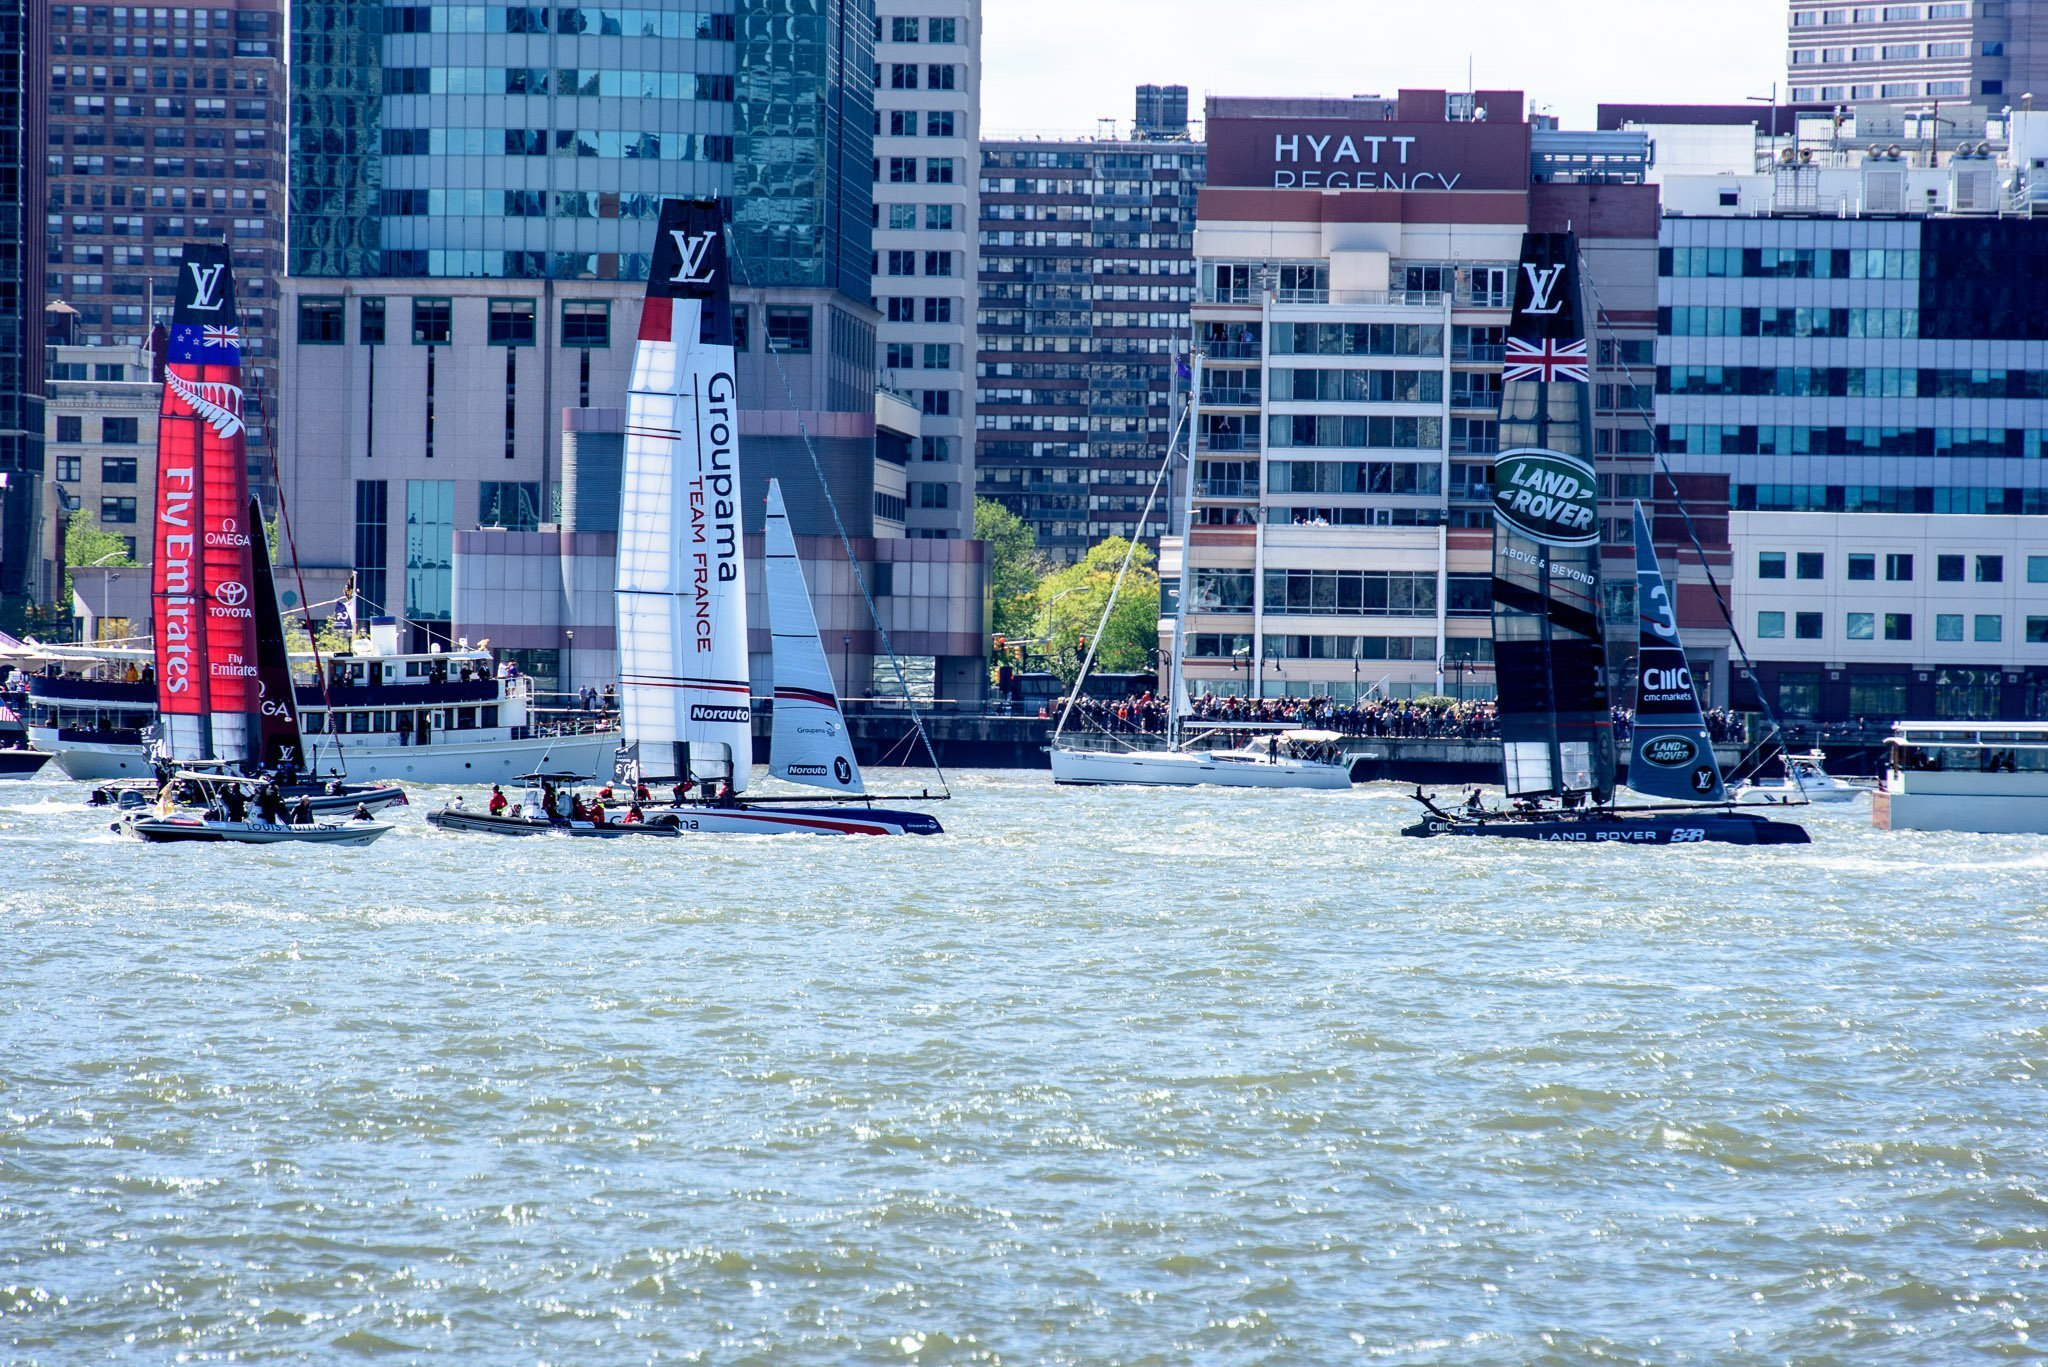 Fly Emirates, Team France, Land Rover America's Cup